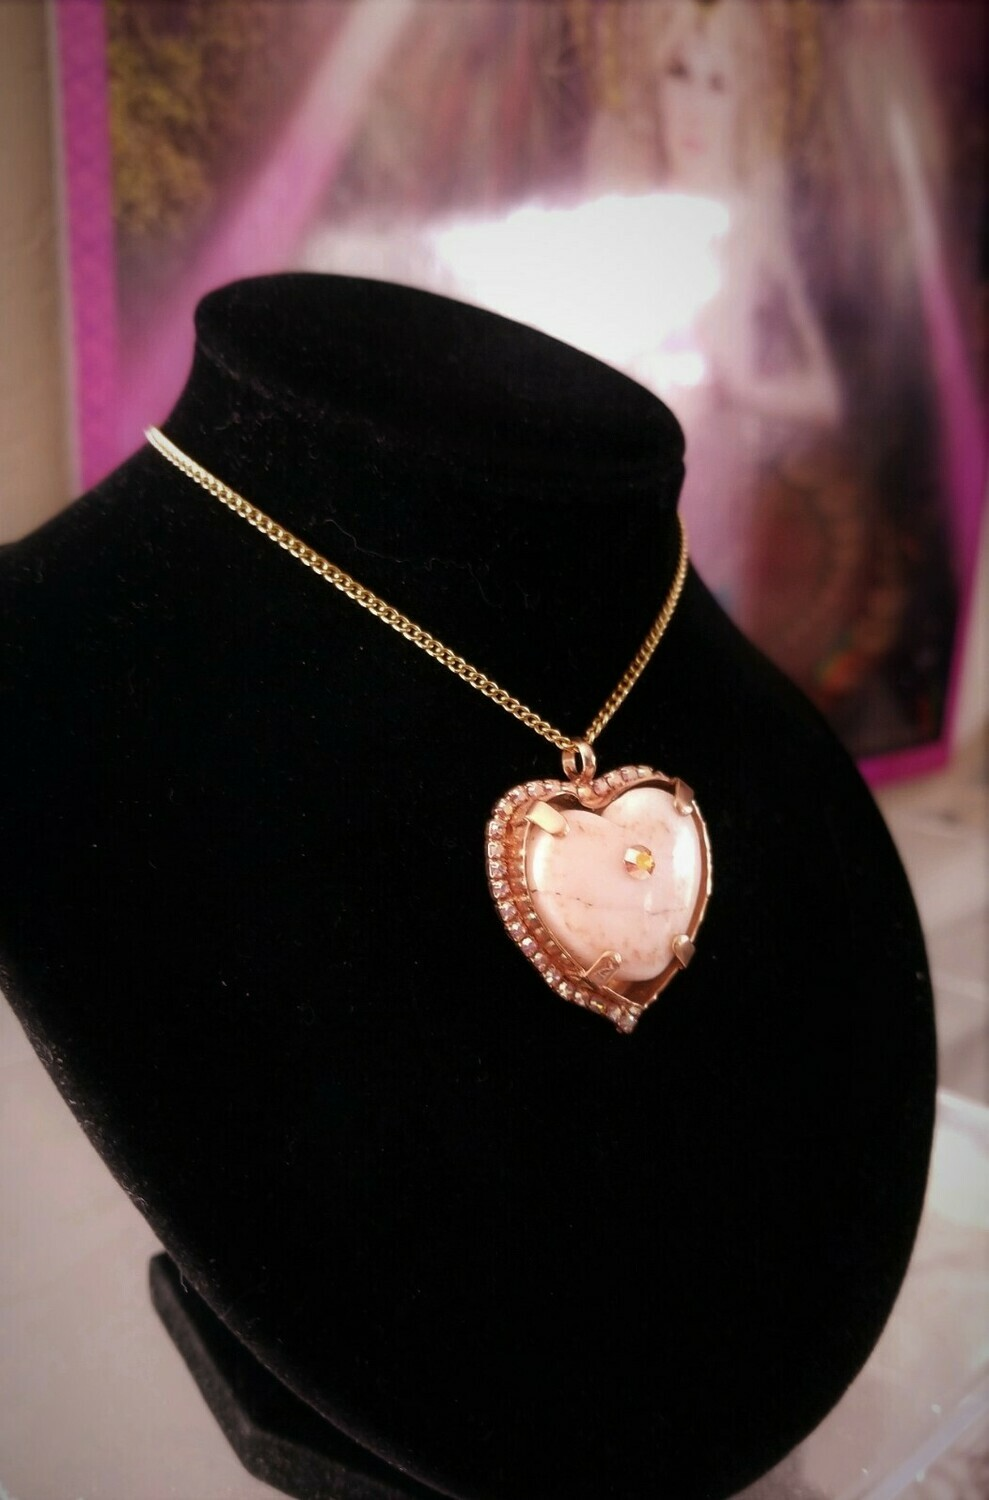 Heart of Sedona Promise Crystal City of Light LOVE  Sale $244.00/333.00